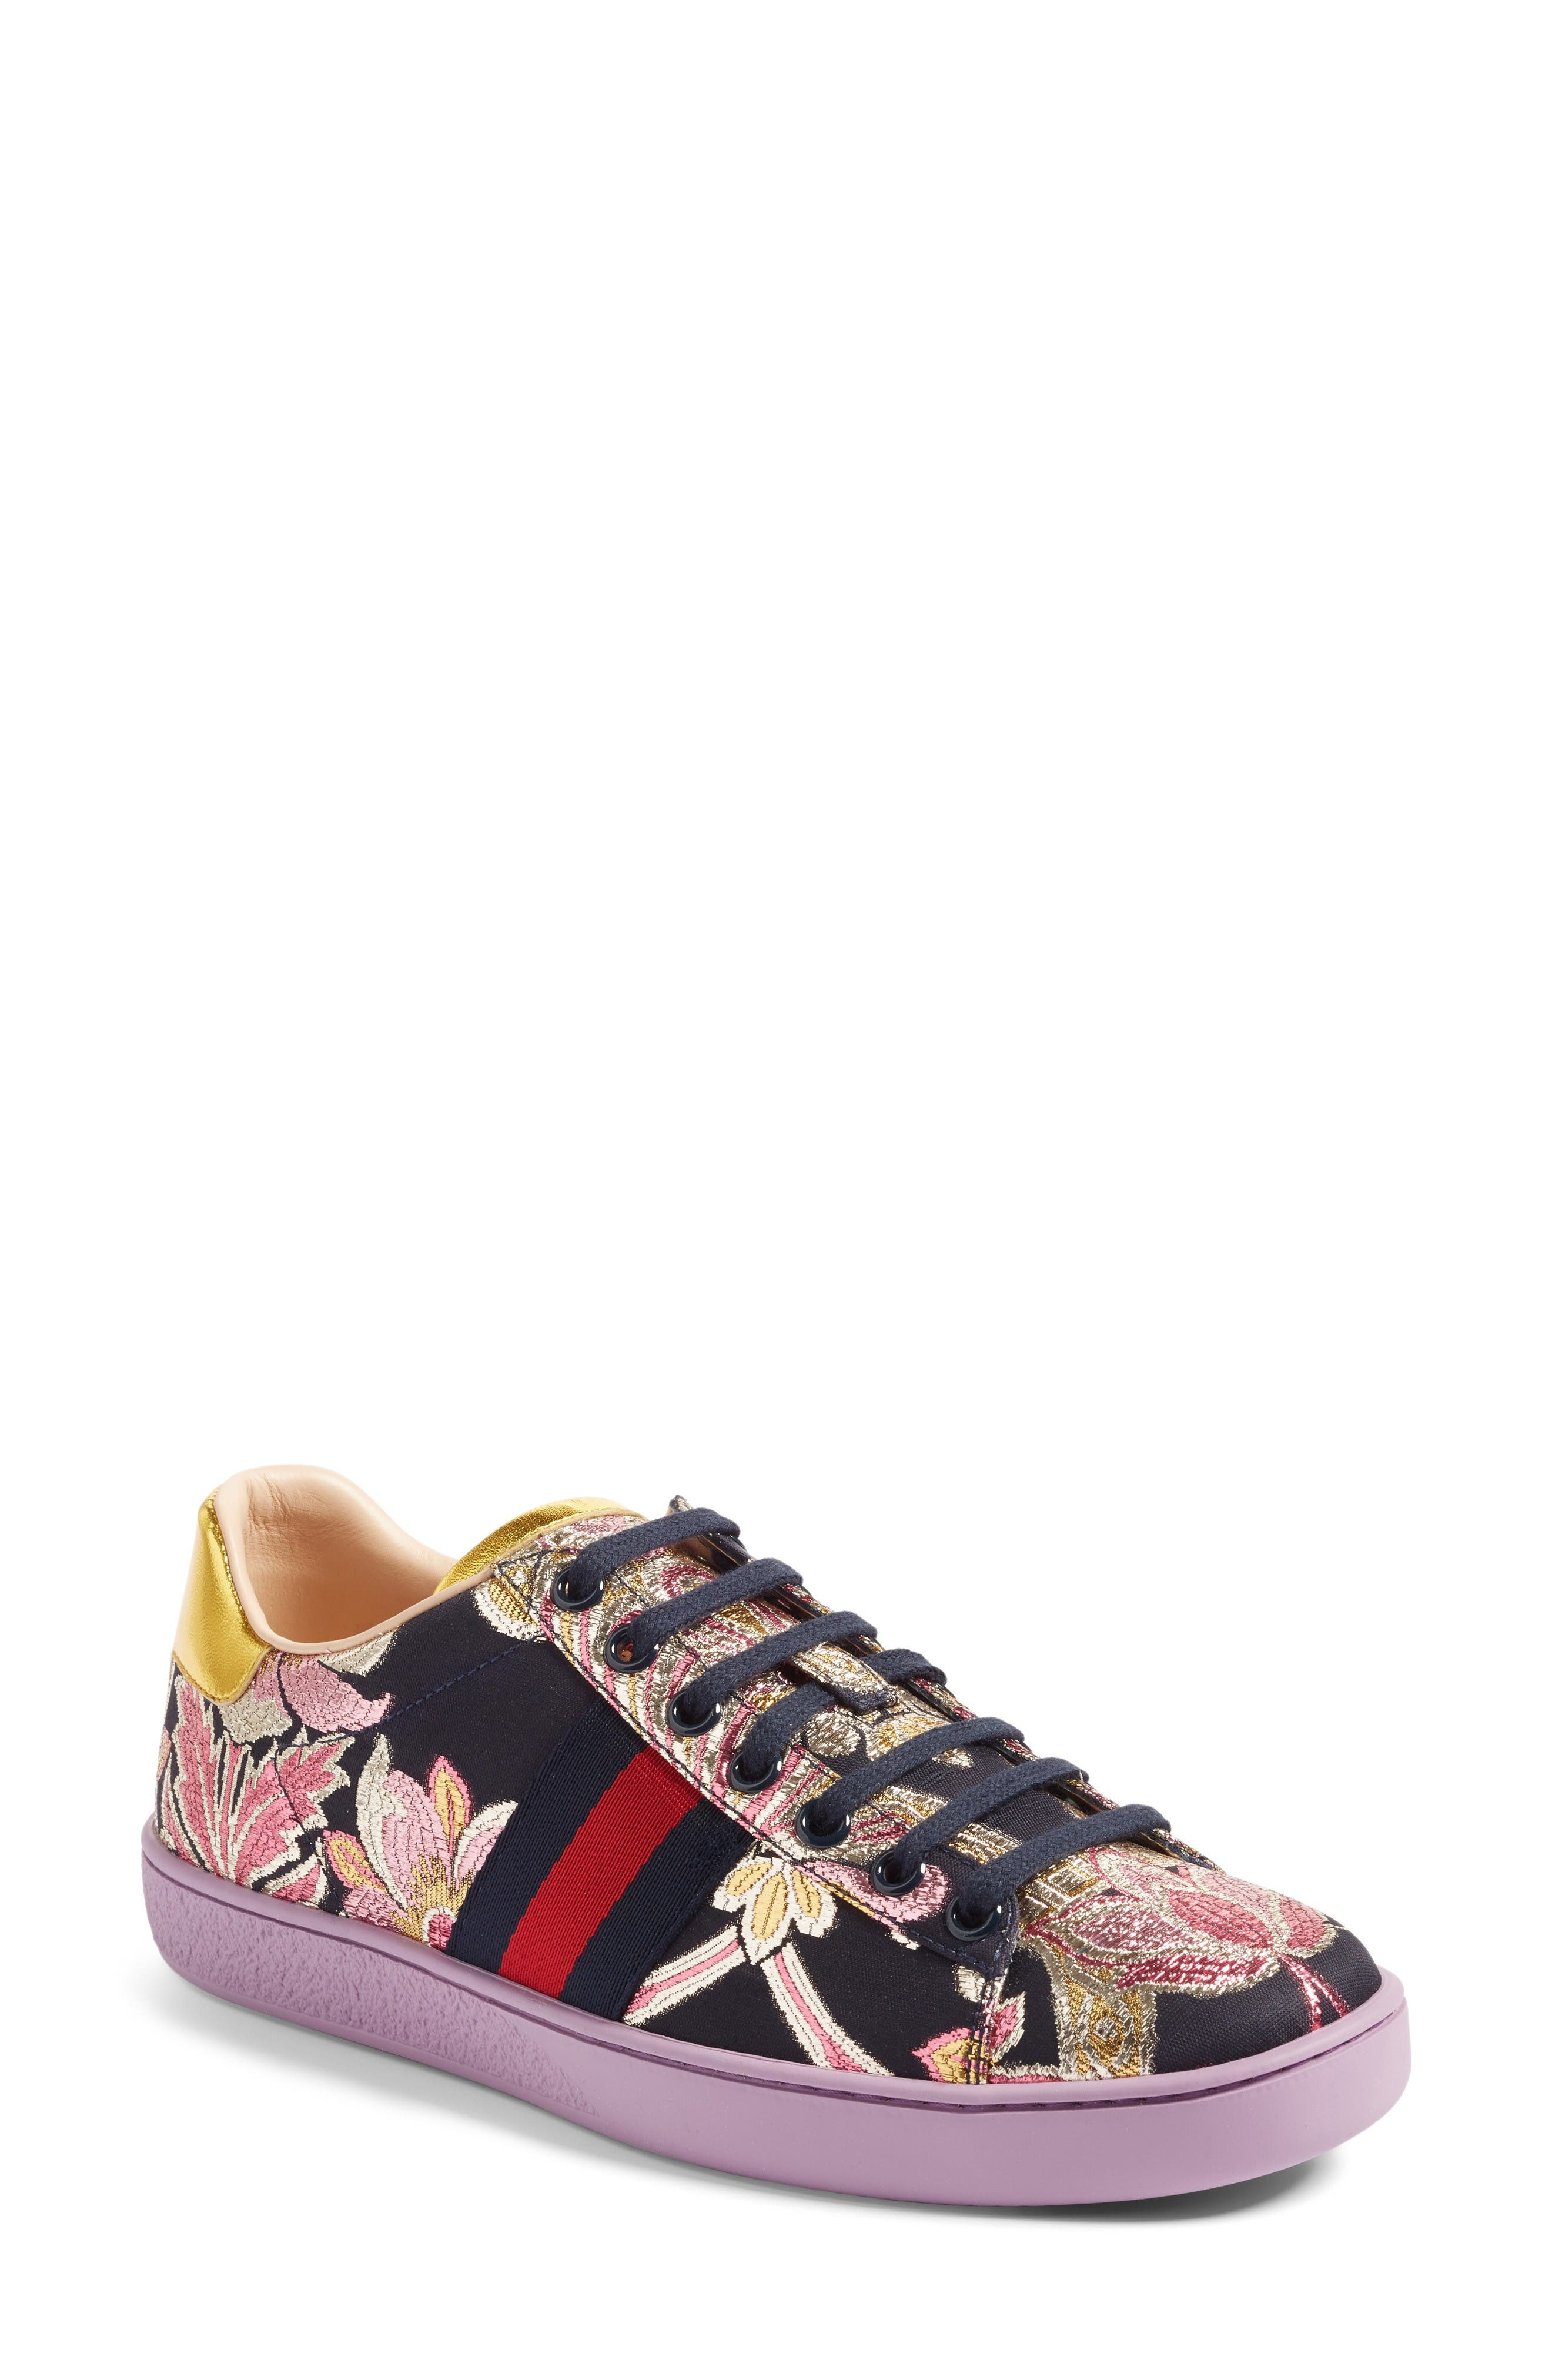 Alternate Image 1 Selected - Gucci New Ace Floral Sneaker (Women)